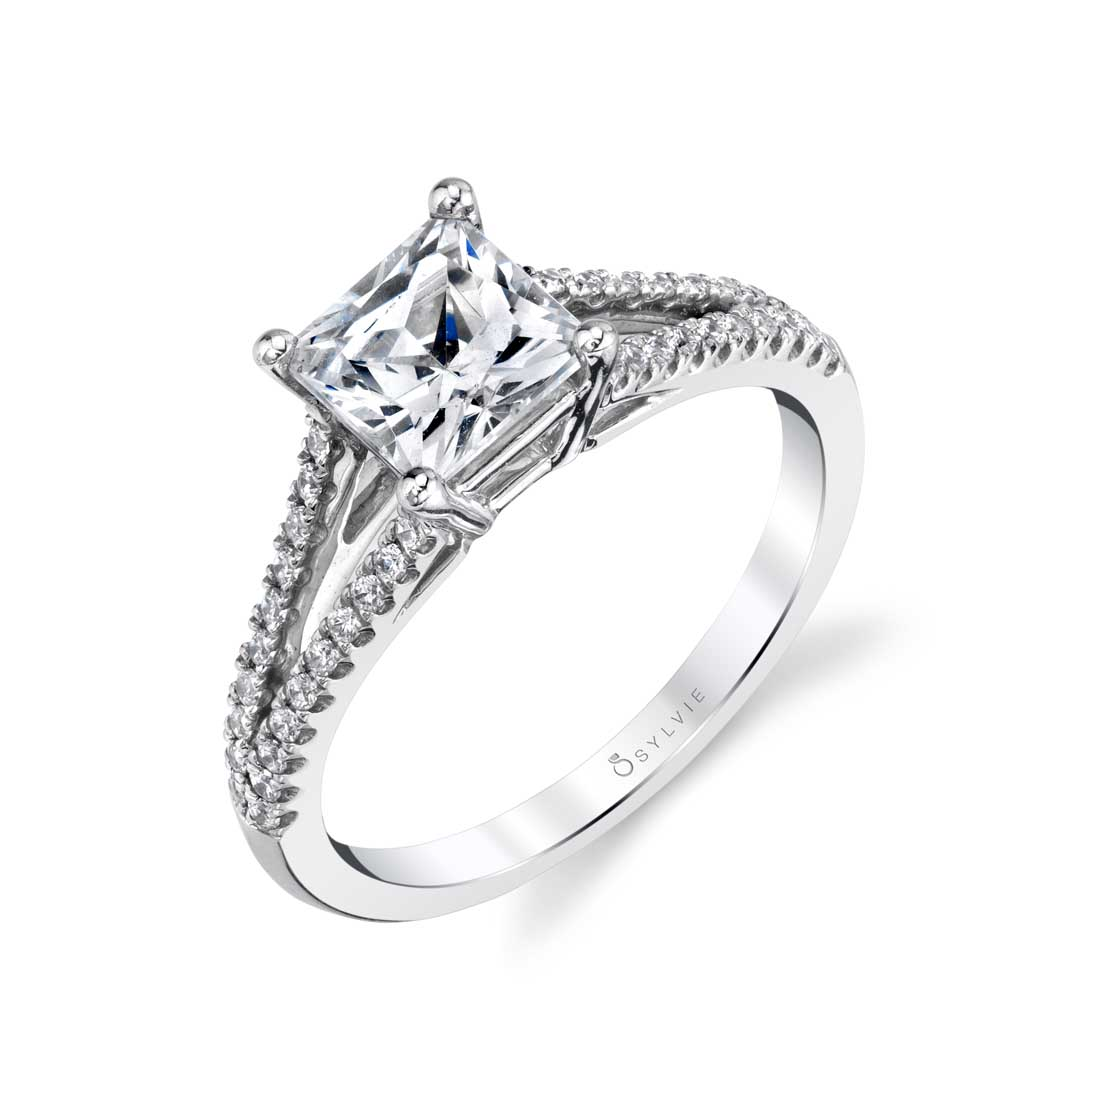 Unique Split Shank Engagement Ring